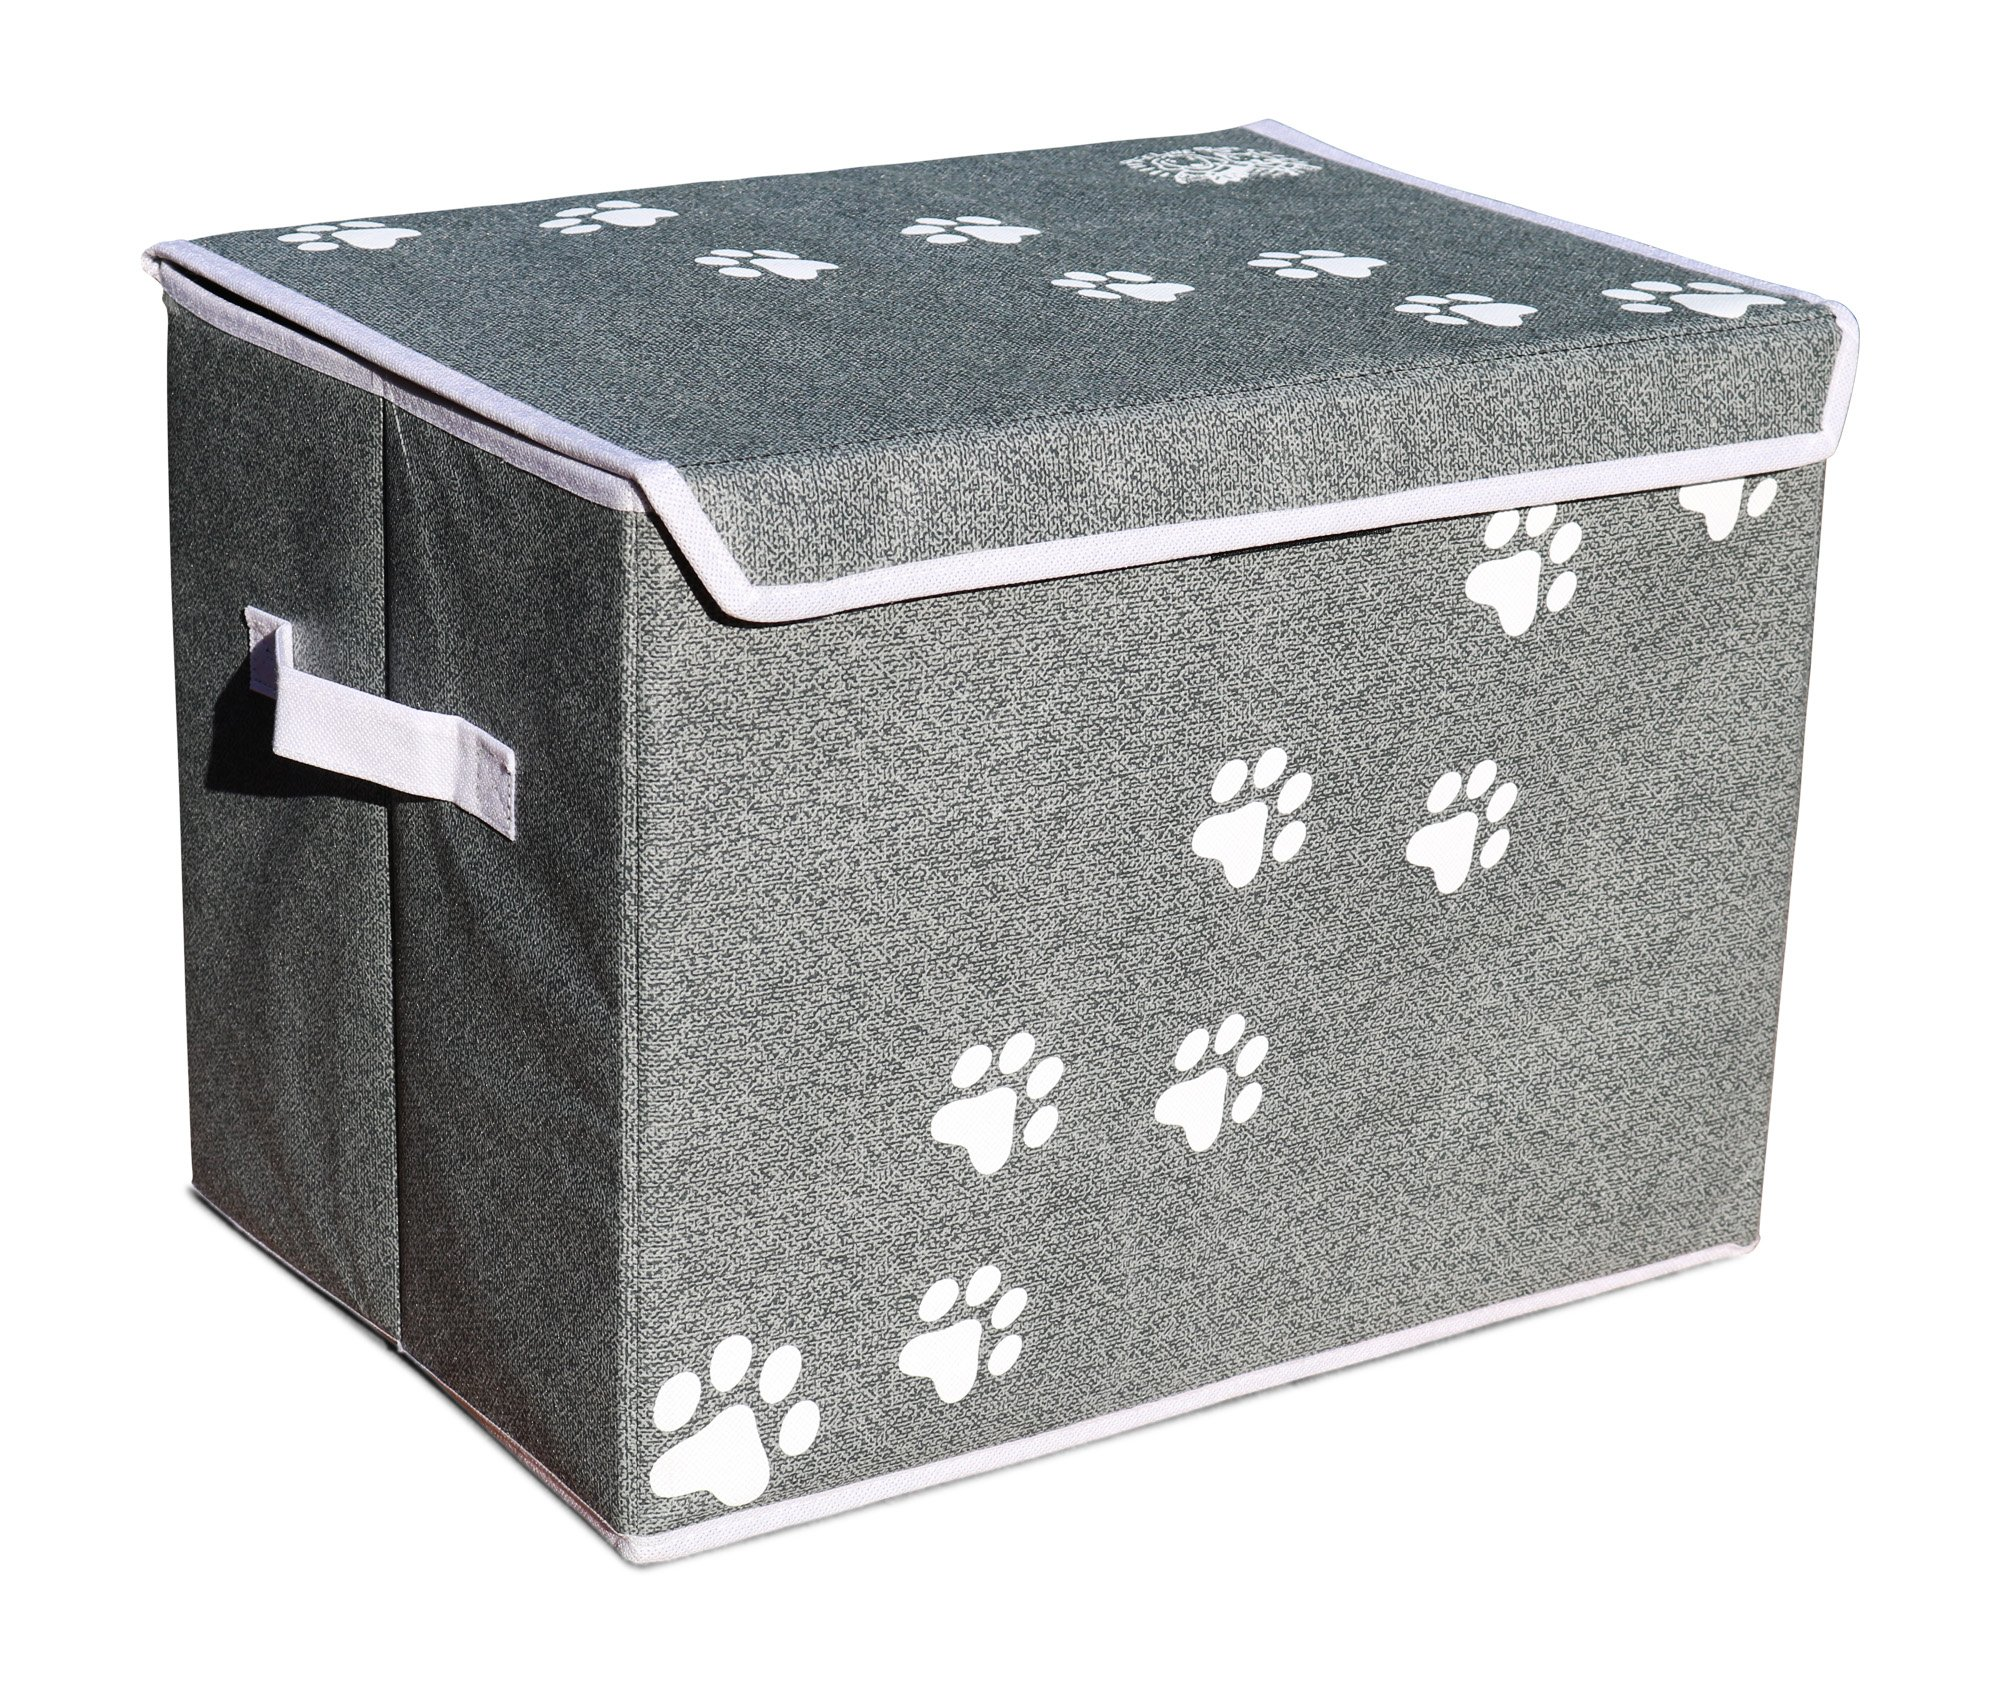 Feline Ruff Large Dog Toys Storage Box 16″ x 12″ Pet Toy Storage Basket with Lid. Perfect Collapsible Canvas Bin for Cat Toys and Accessories Too! (Gray)